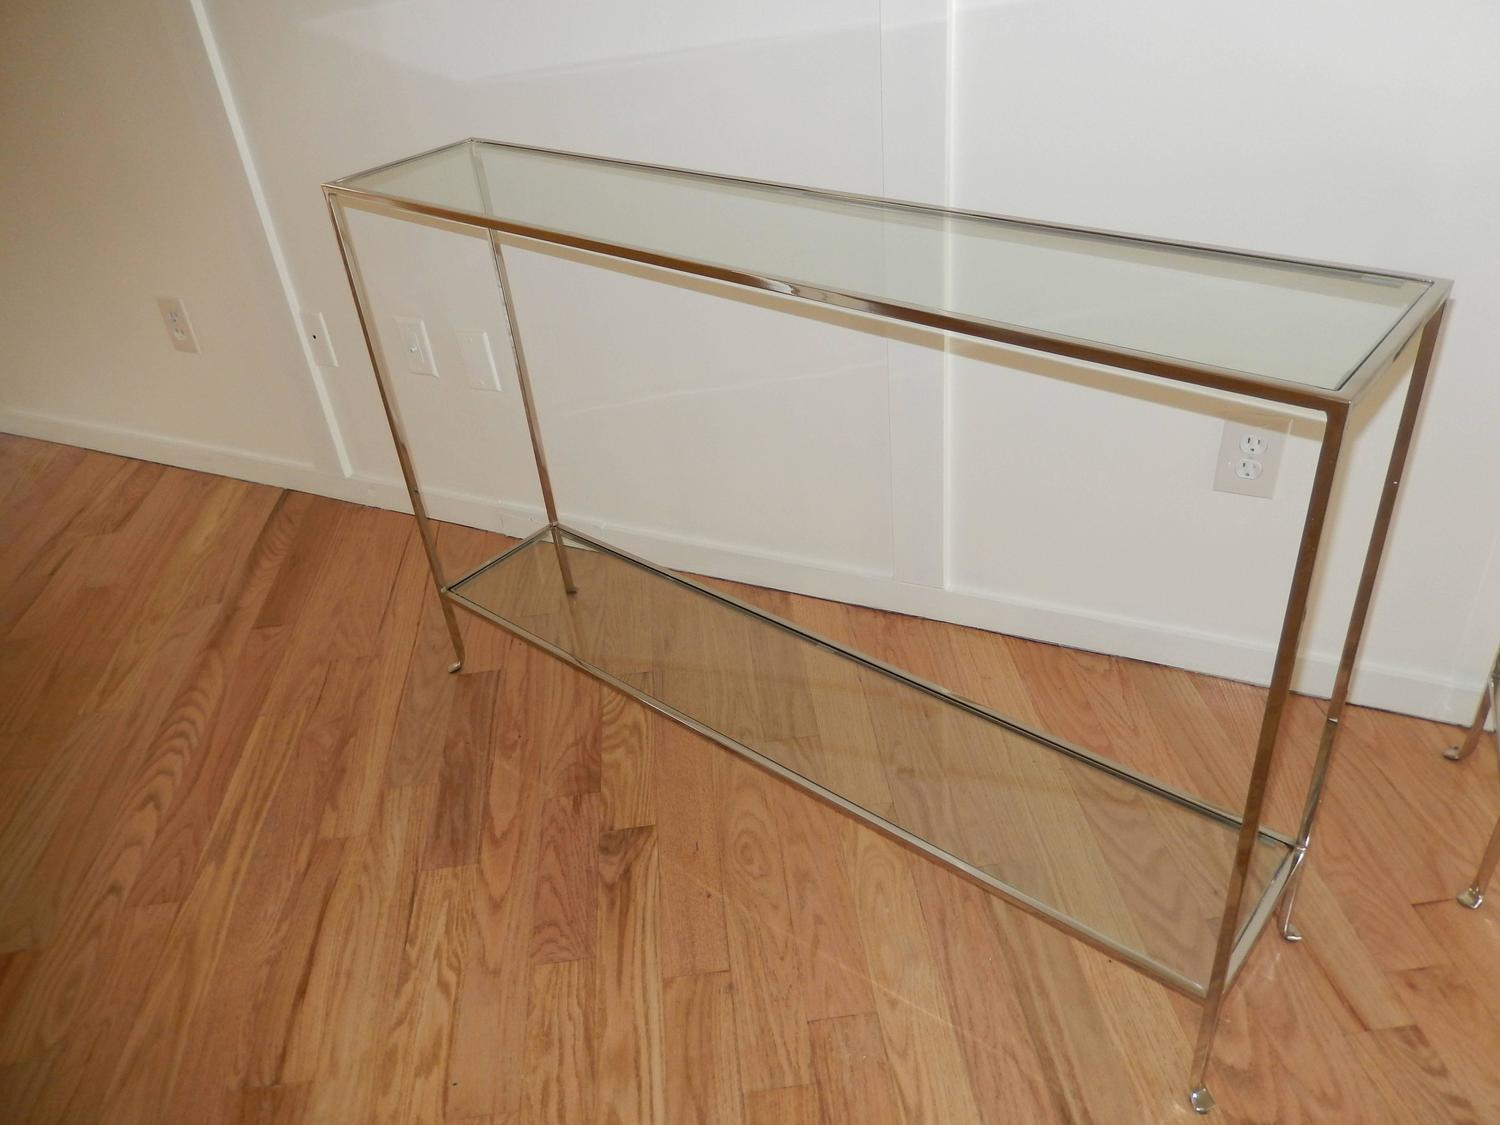 Nickel and glass two level modern console table for sale for 10 inch depth console table